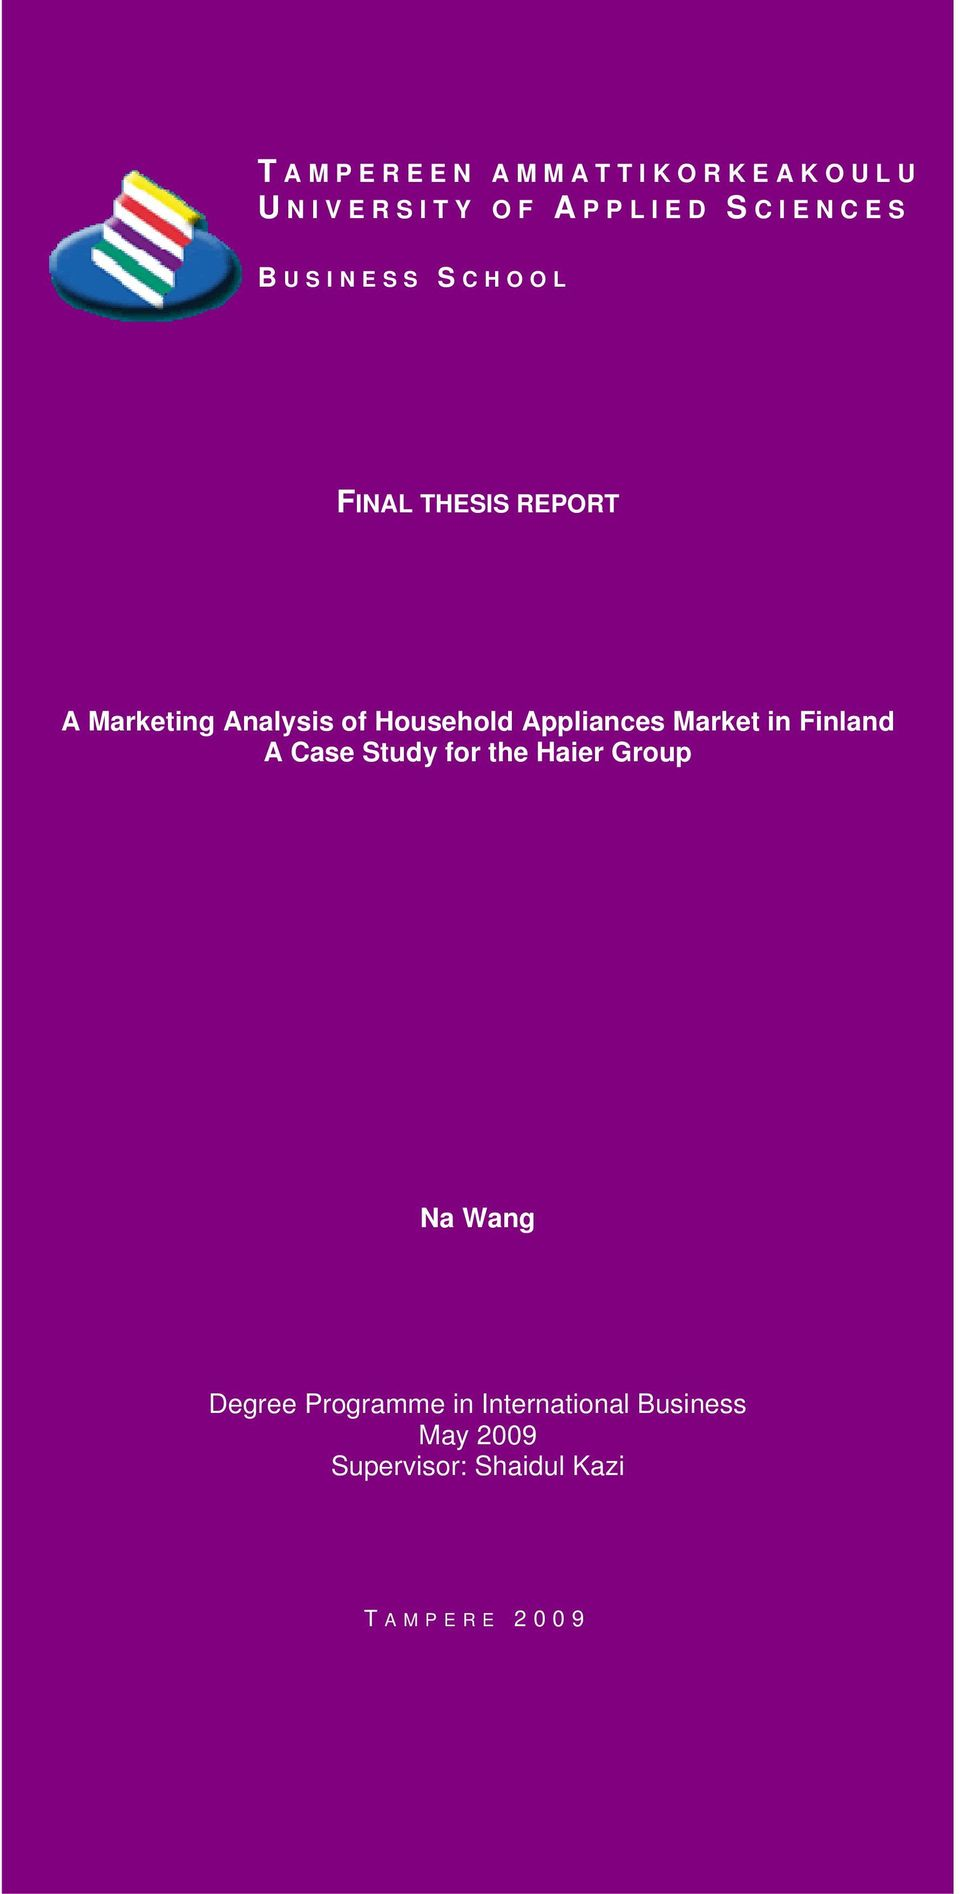 A Marketing Analysis of Household Appliances Market in